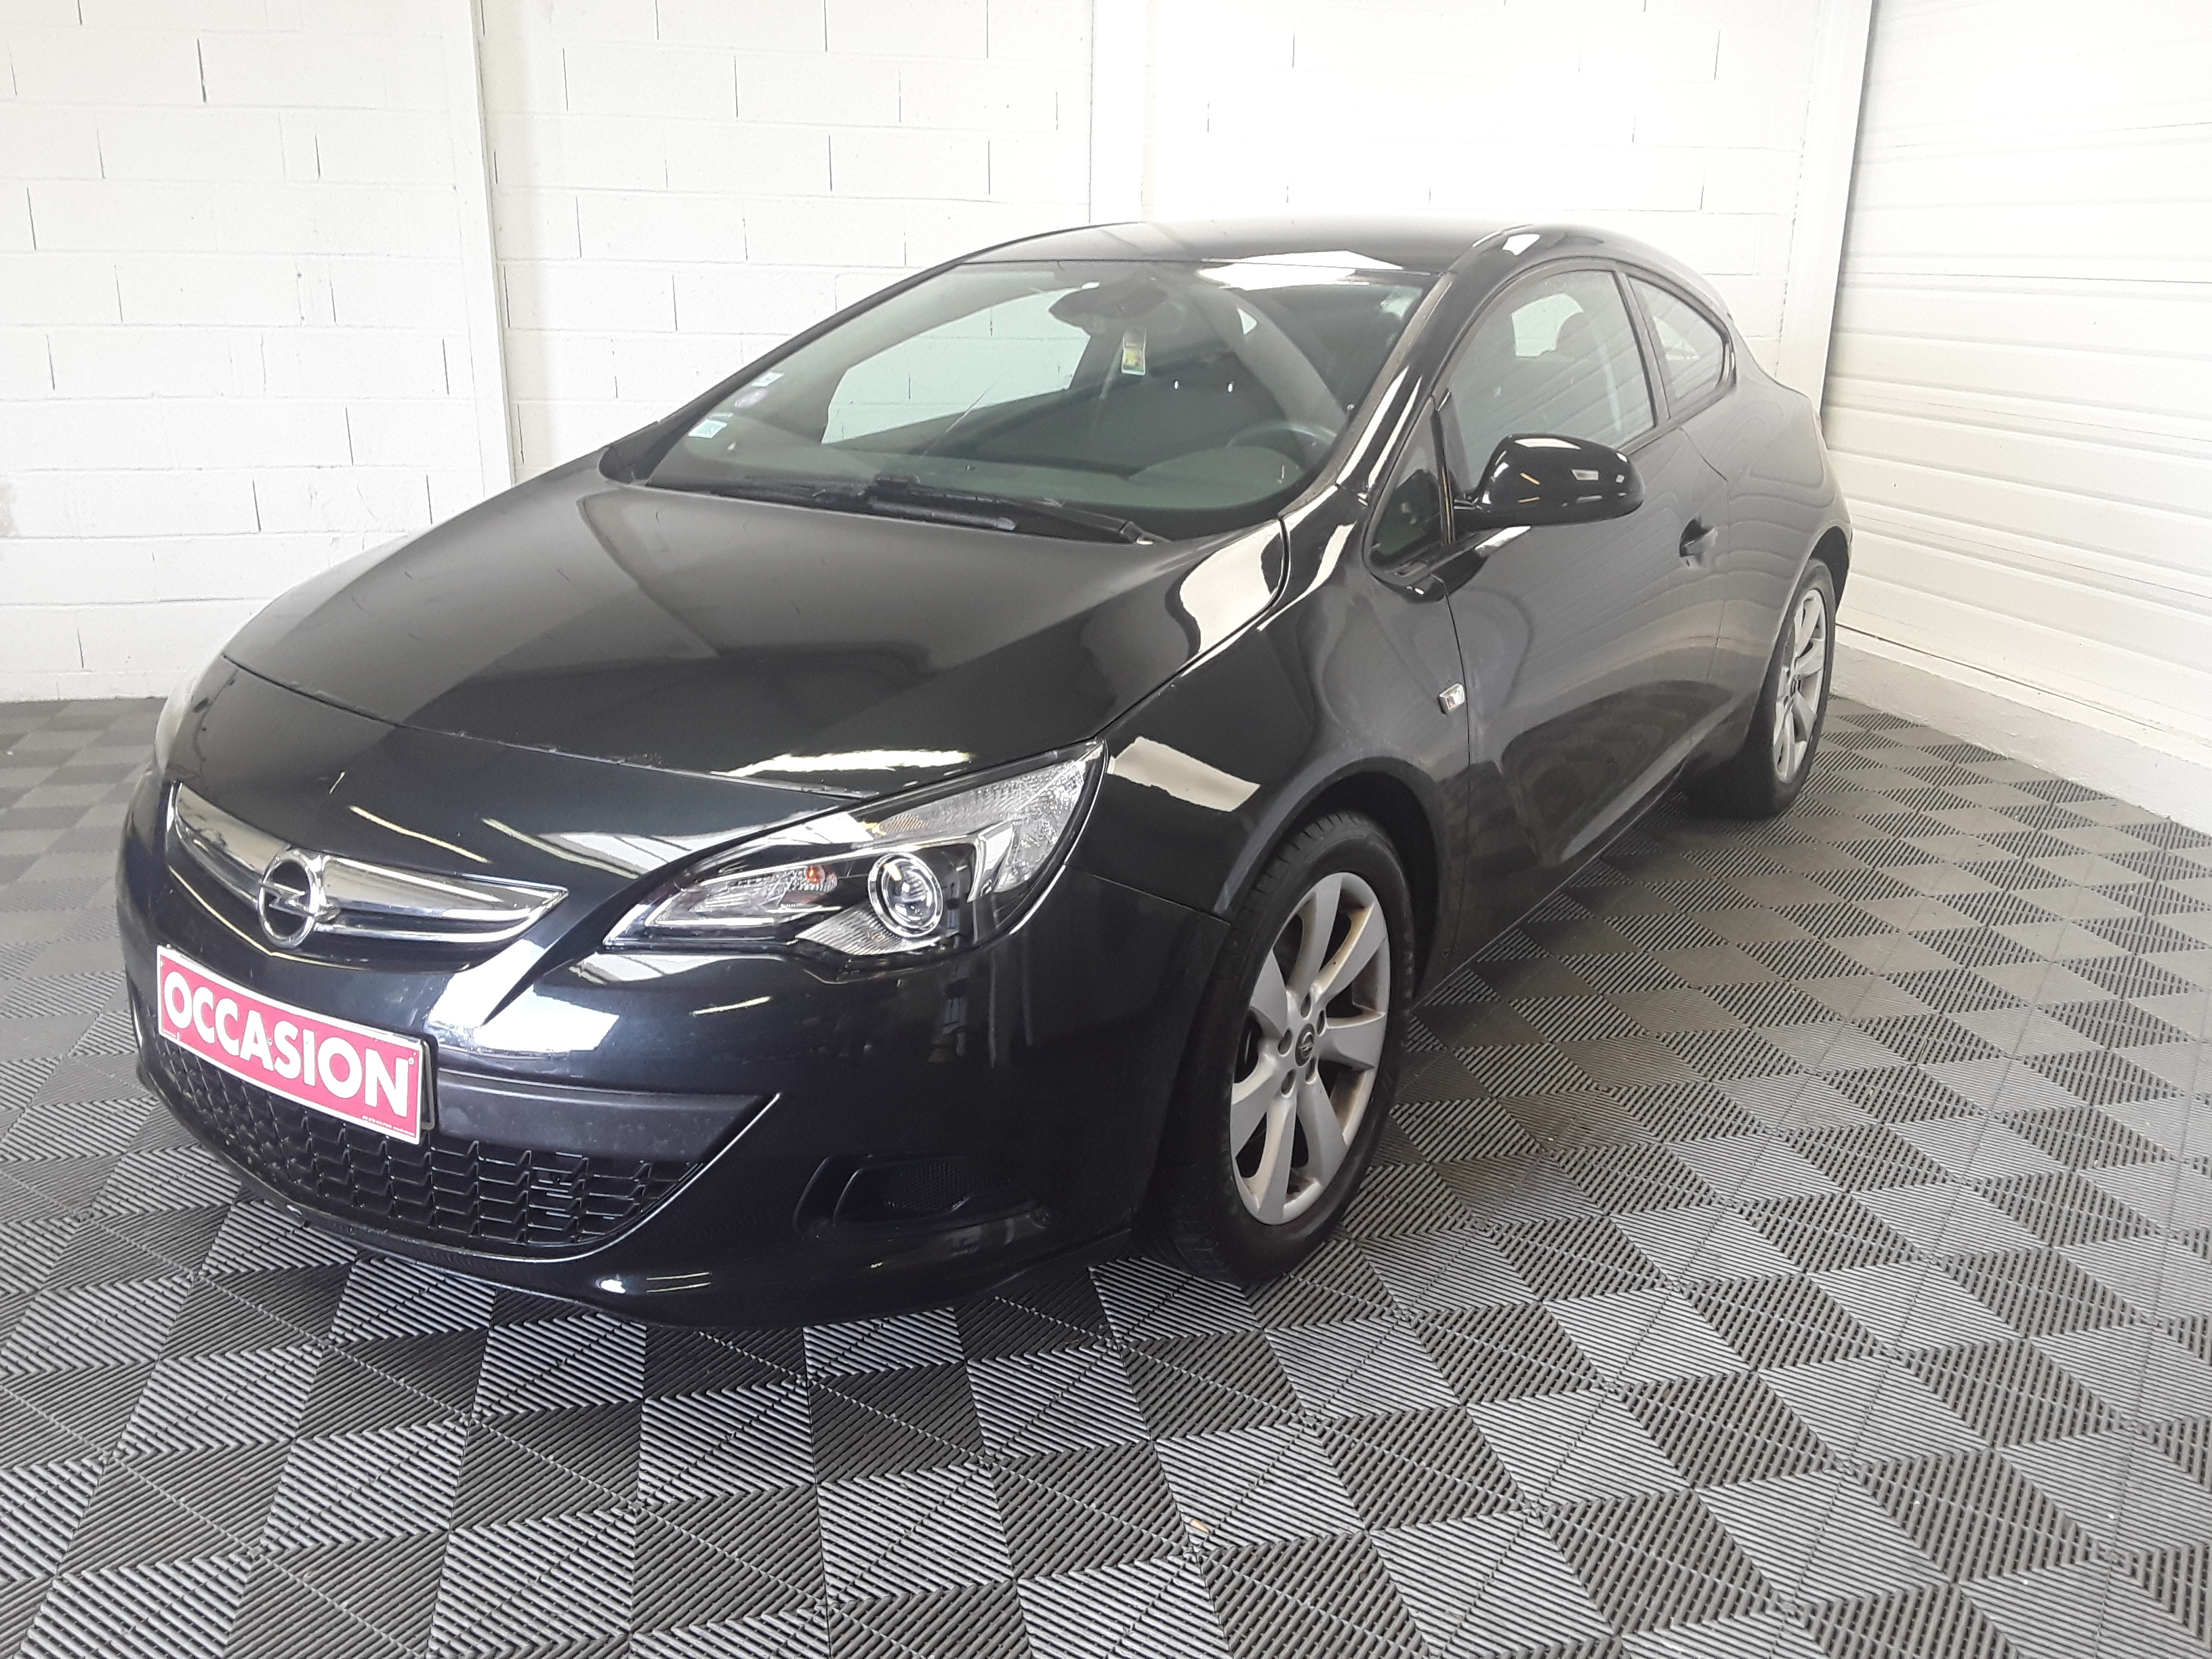 OPEL ASTRA GTC 1.4 Turbo 120 ch Start/Stop Edition d'occasion